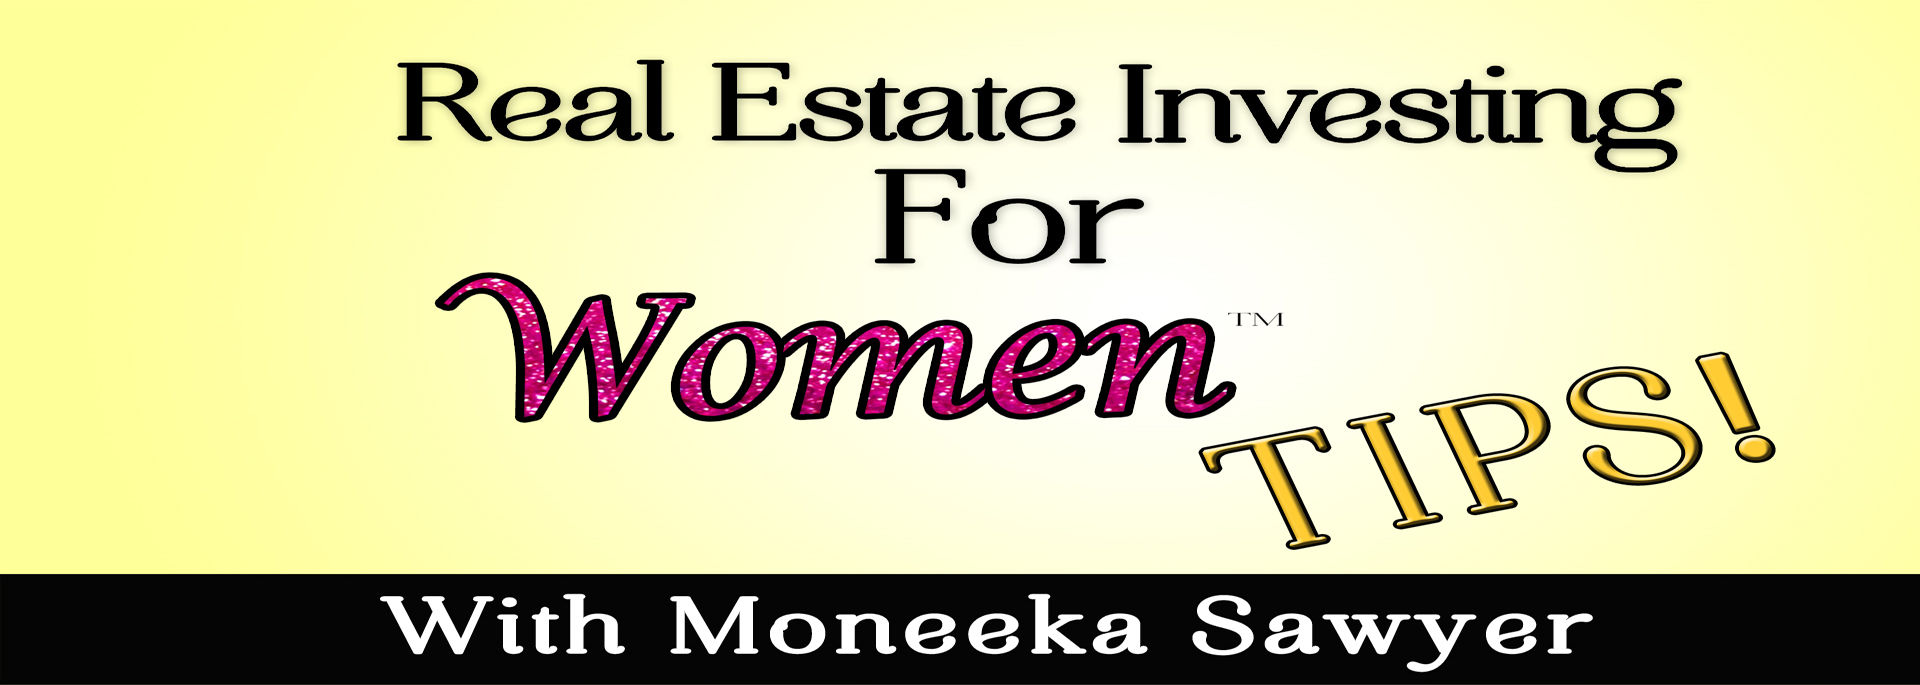 REAL ESTATE INVESTING FOR WOMEN TIPS channel